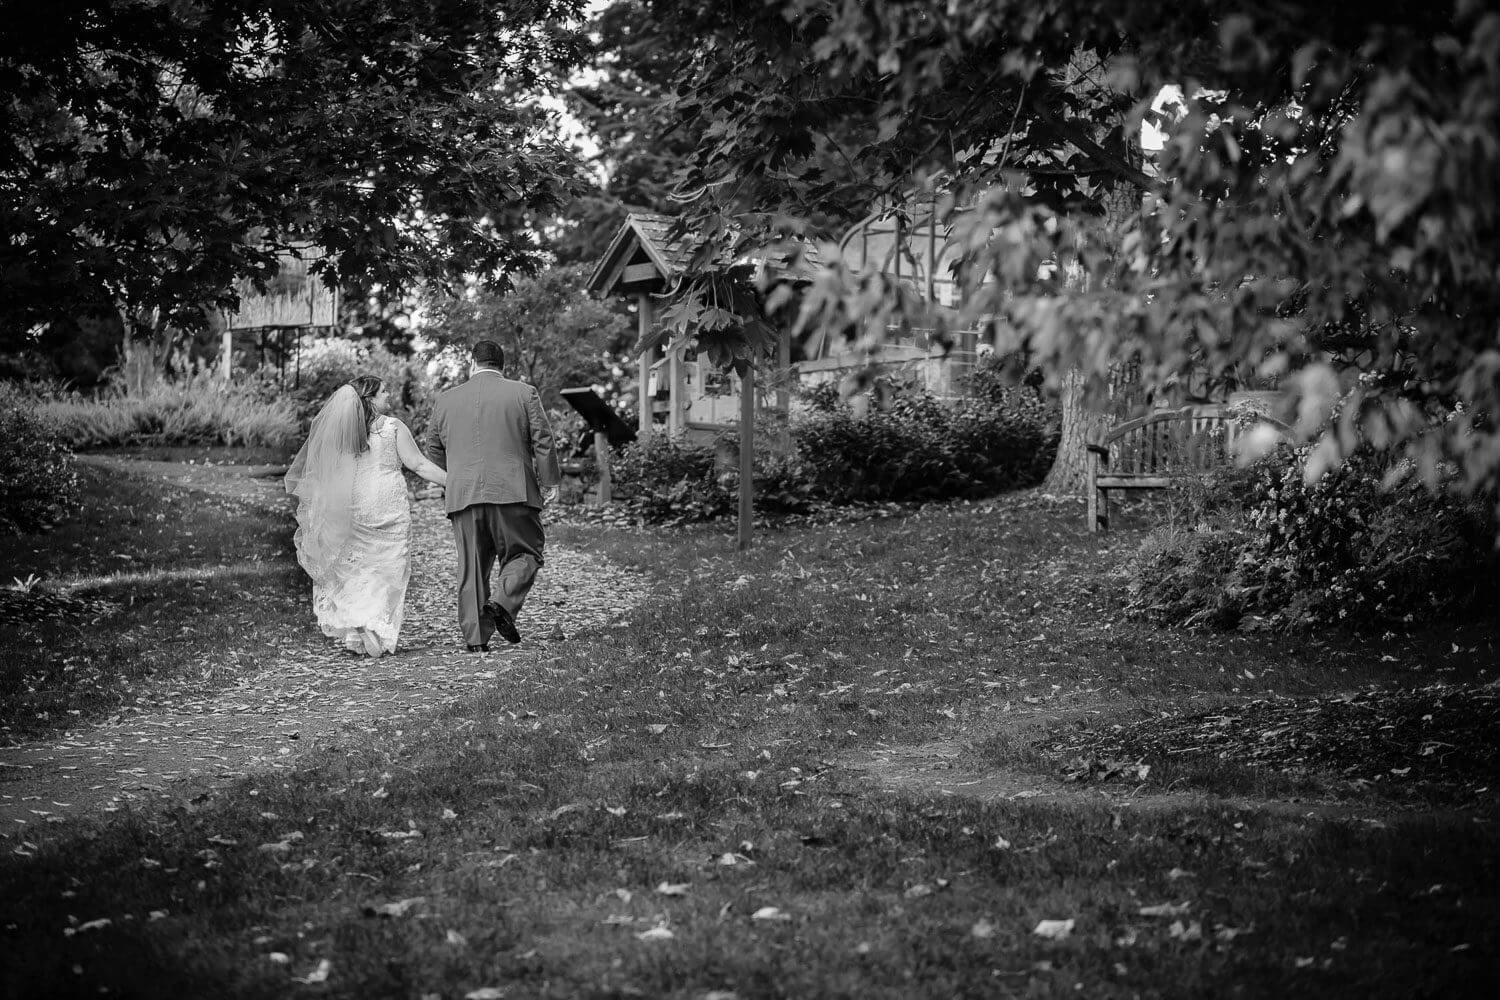 Bride and groom walking away in black and white at Jockey Hollow Park New Jersey Wedding Photography